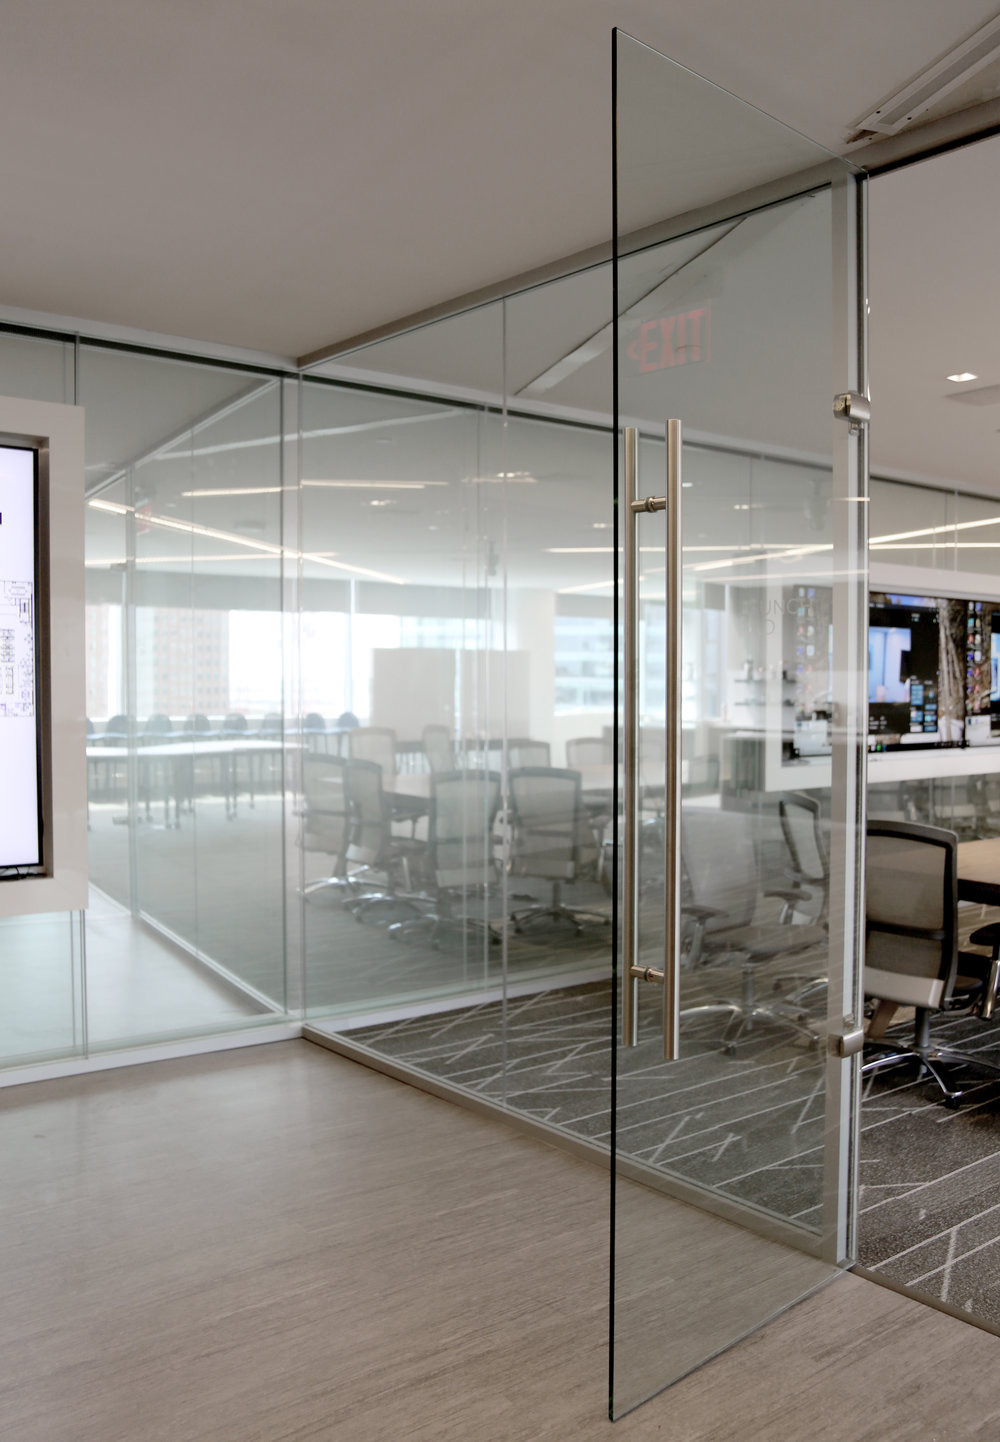 Litespace Demountable System Specialty Glass Etched Mirror - Spaceworks AI.jpg